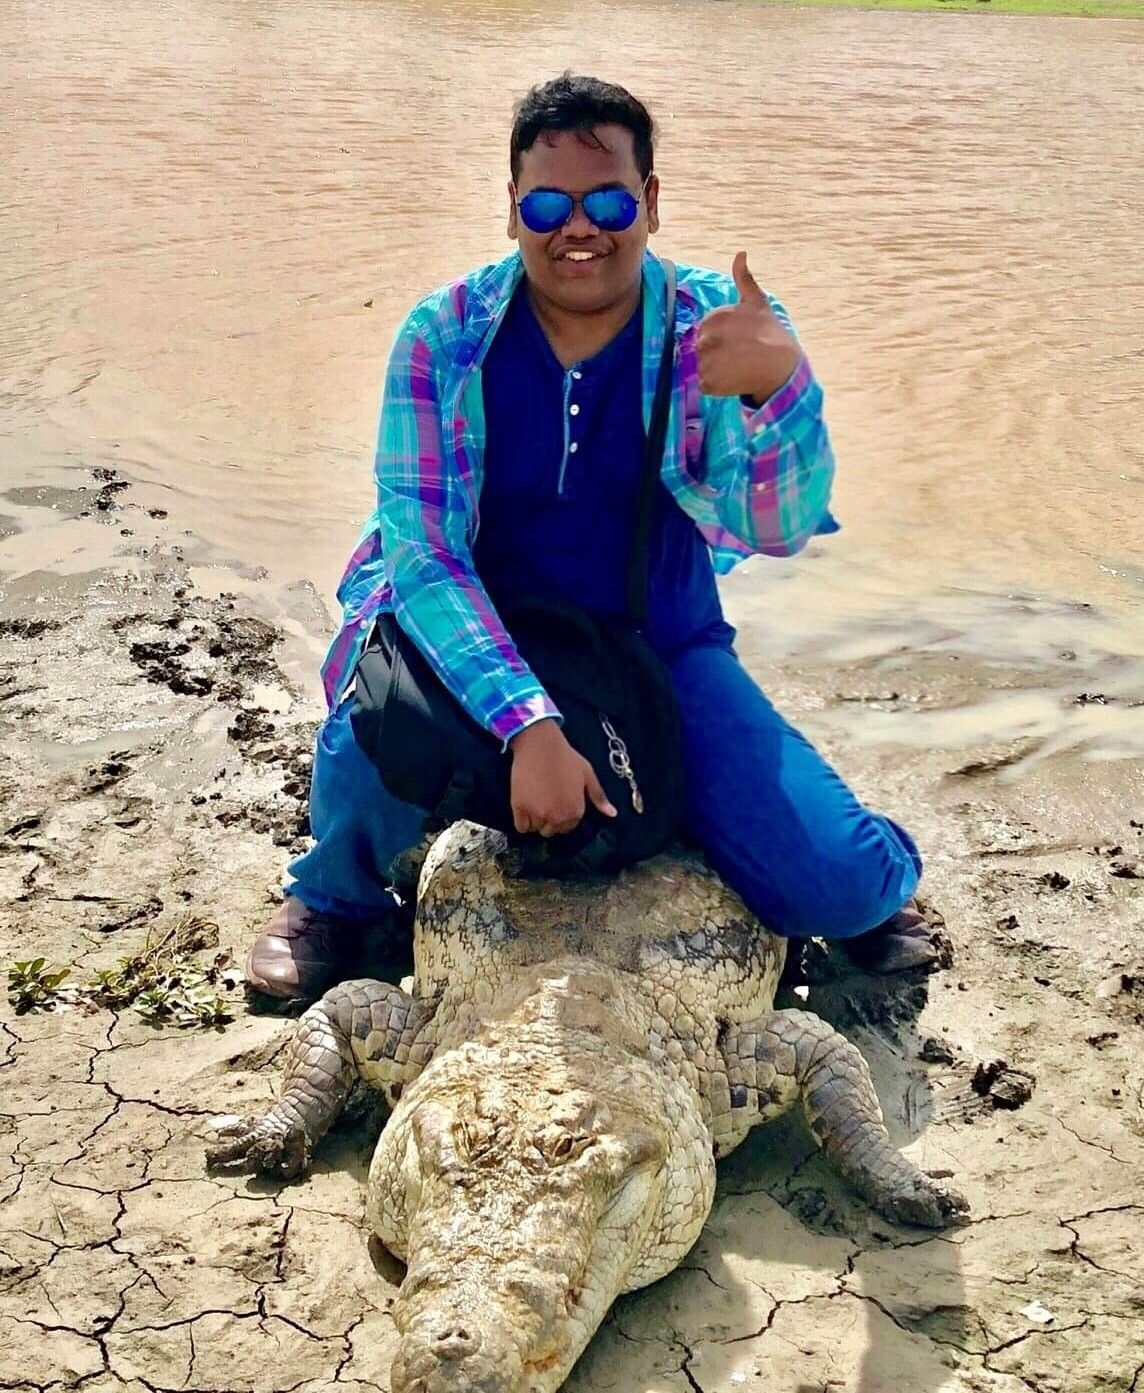 Image may contain: Apparel, Clothing, Alligator, Reptile, Crocodile, Sunglasses, Accessory, Accessories, Glasses, Nature, Outdoors, Sand, Animal, Human, Person